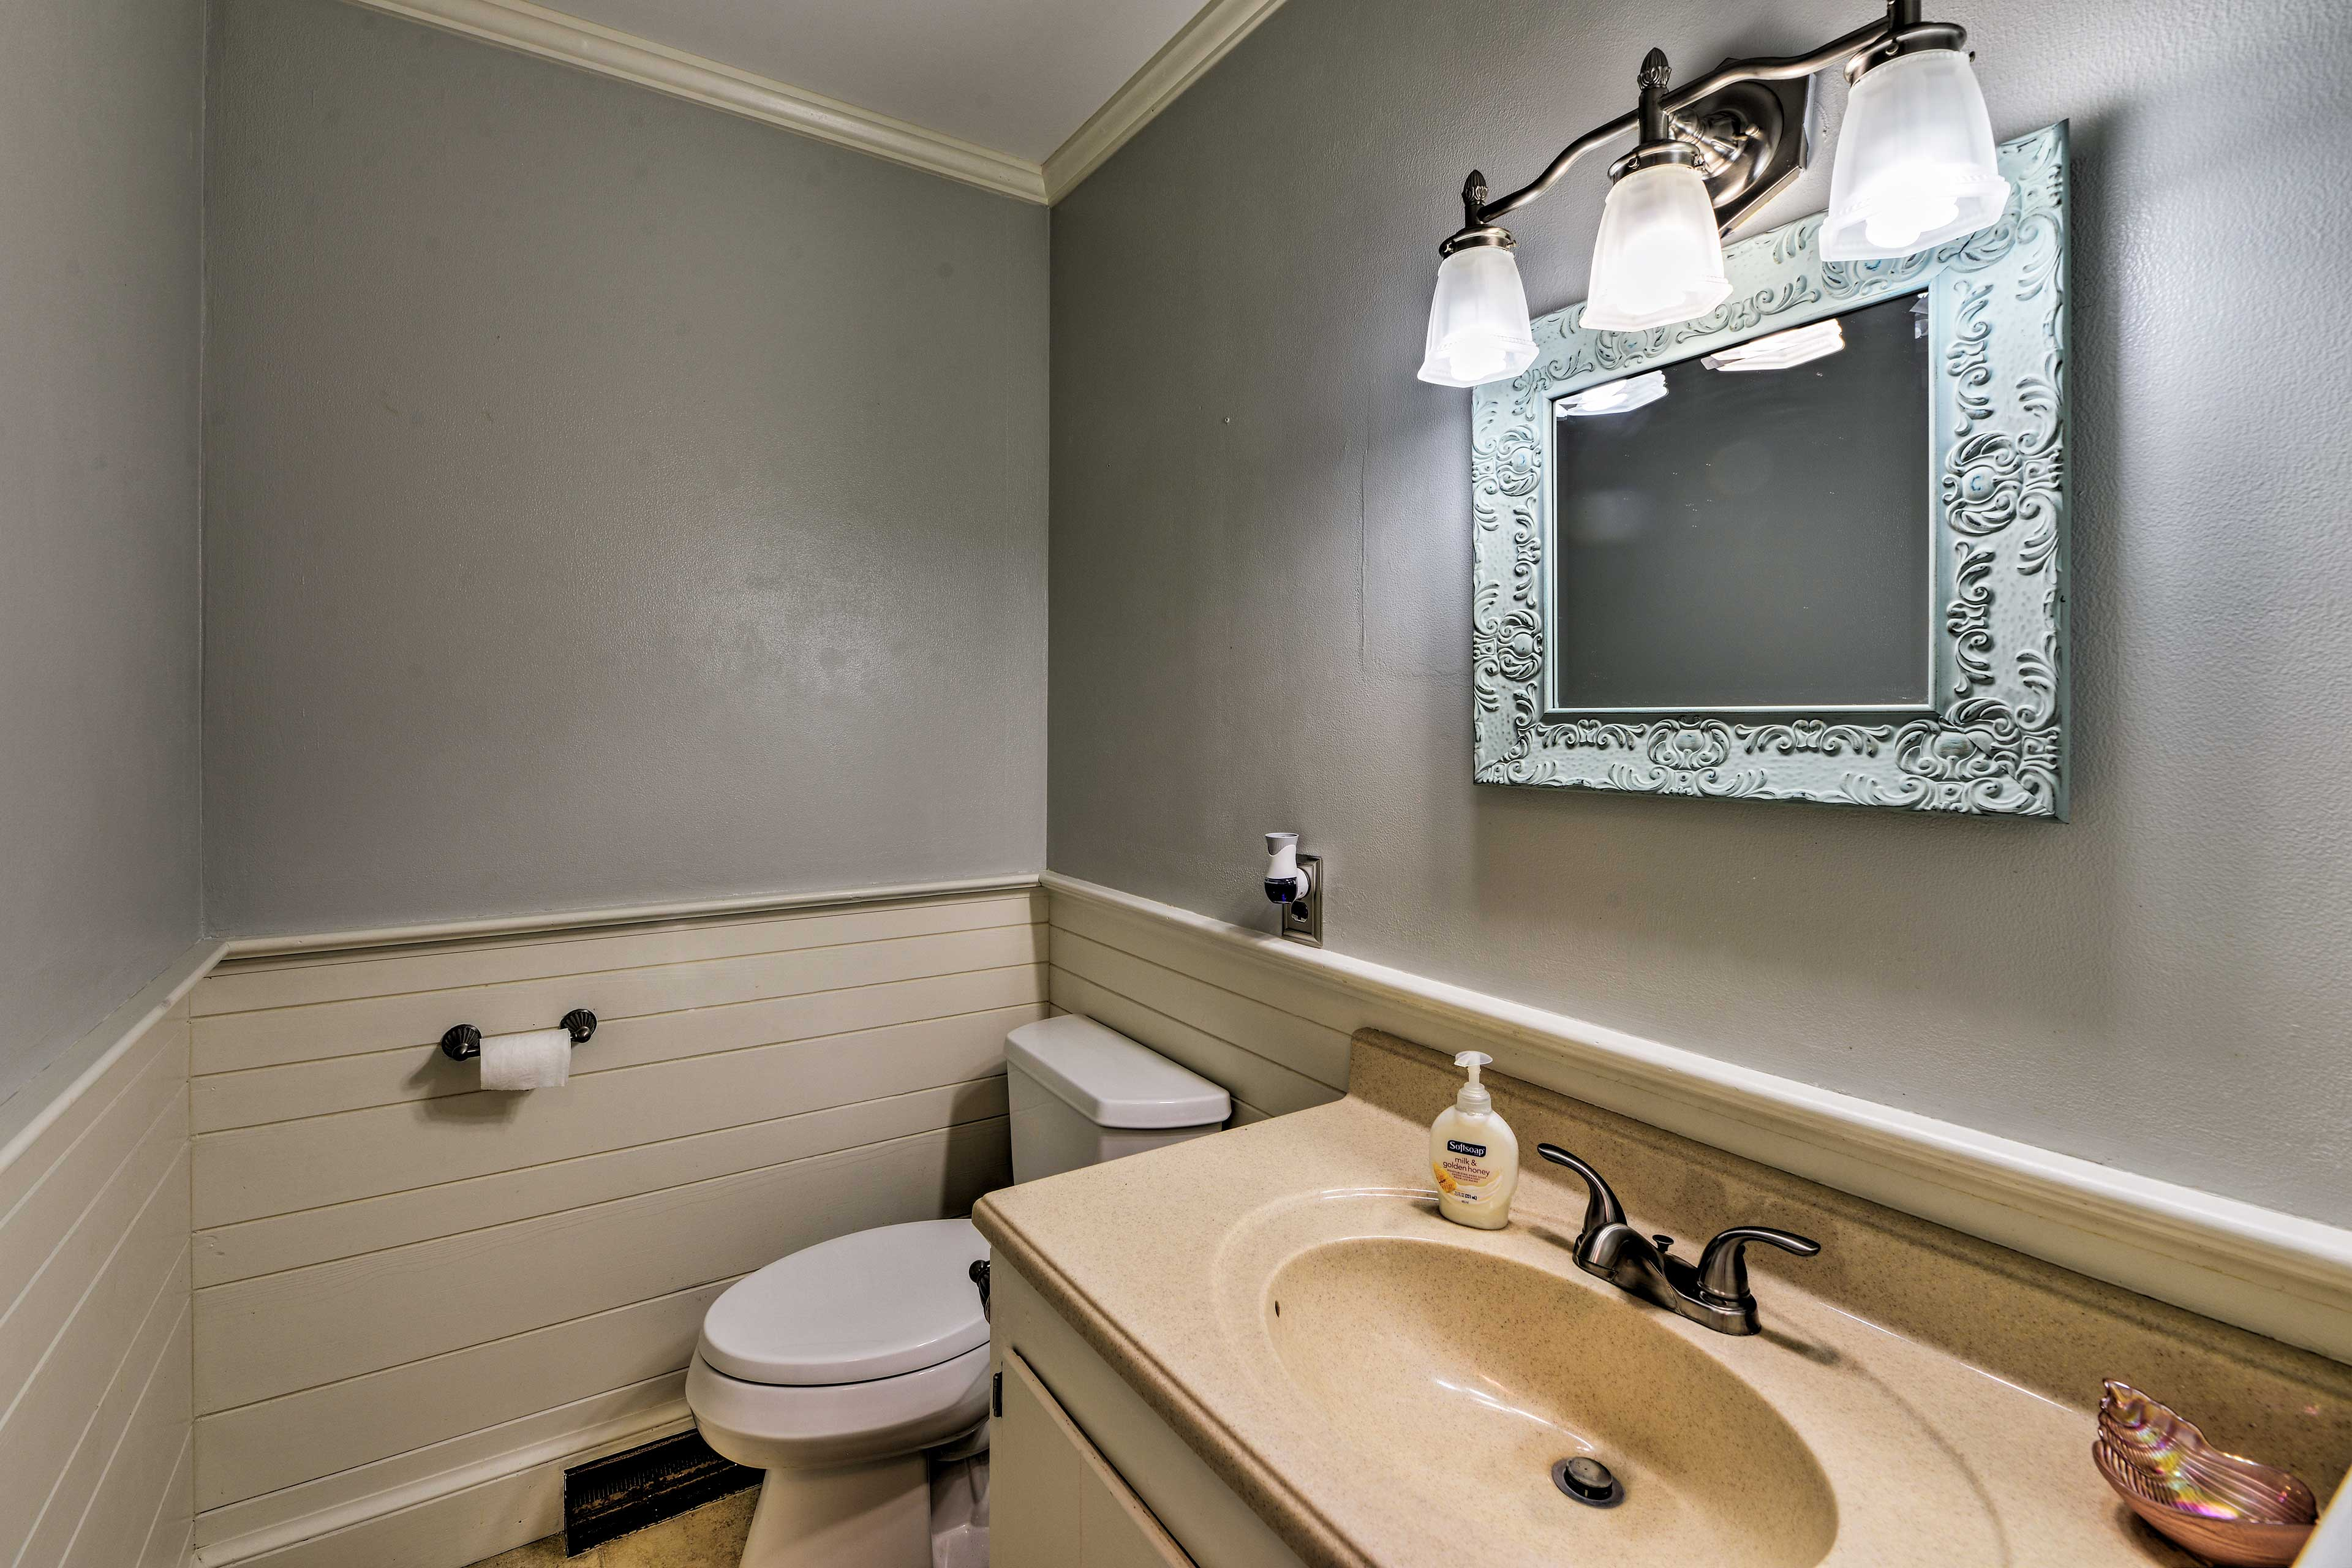 With 3.5 bathrooms,  getting ready in the morning will be a breeze!